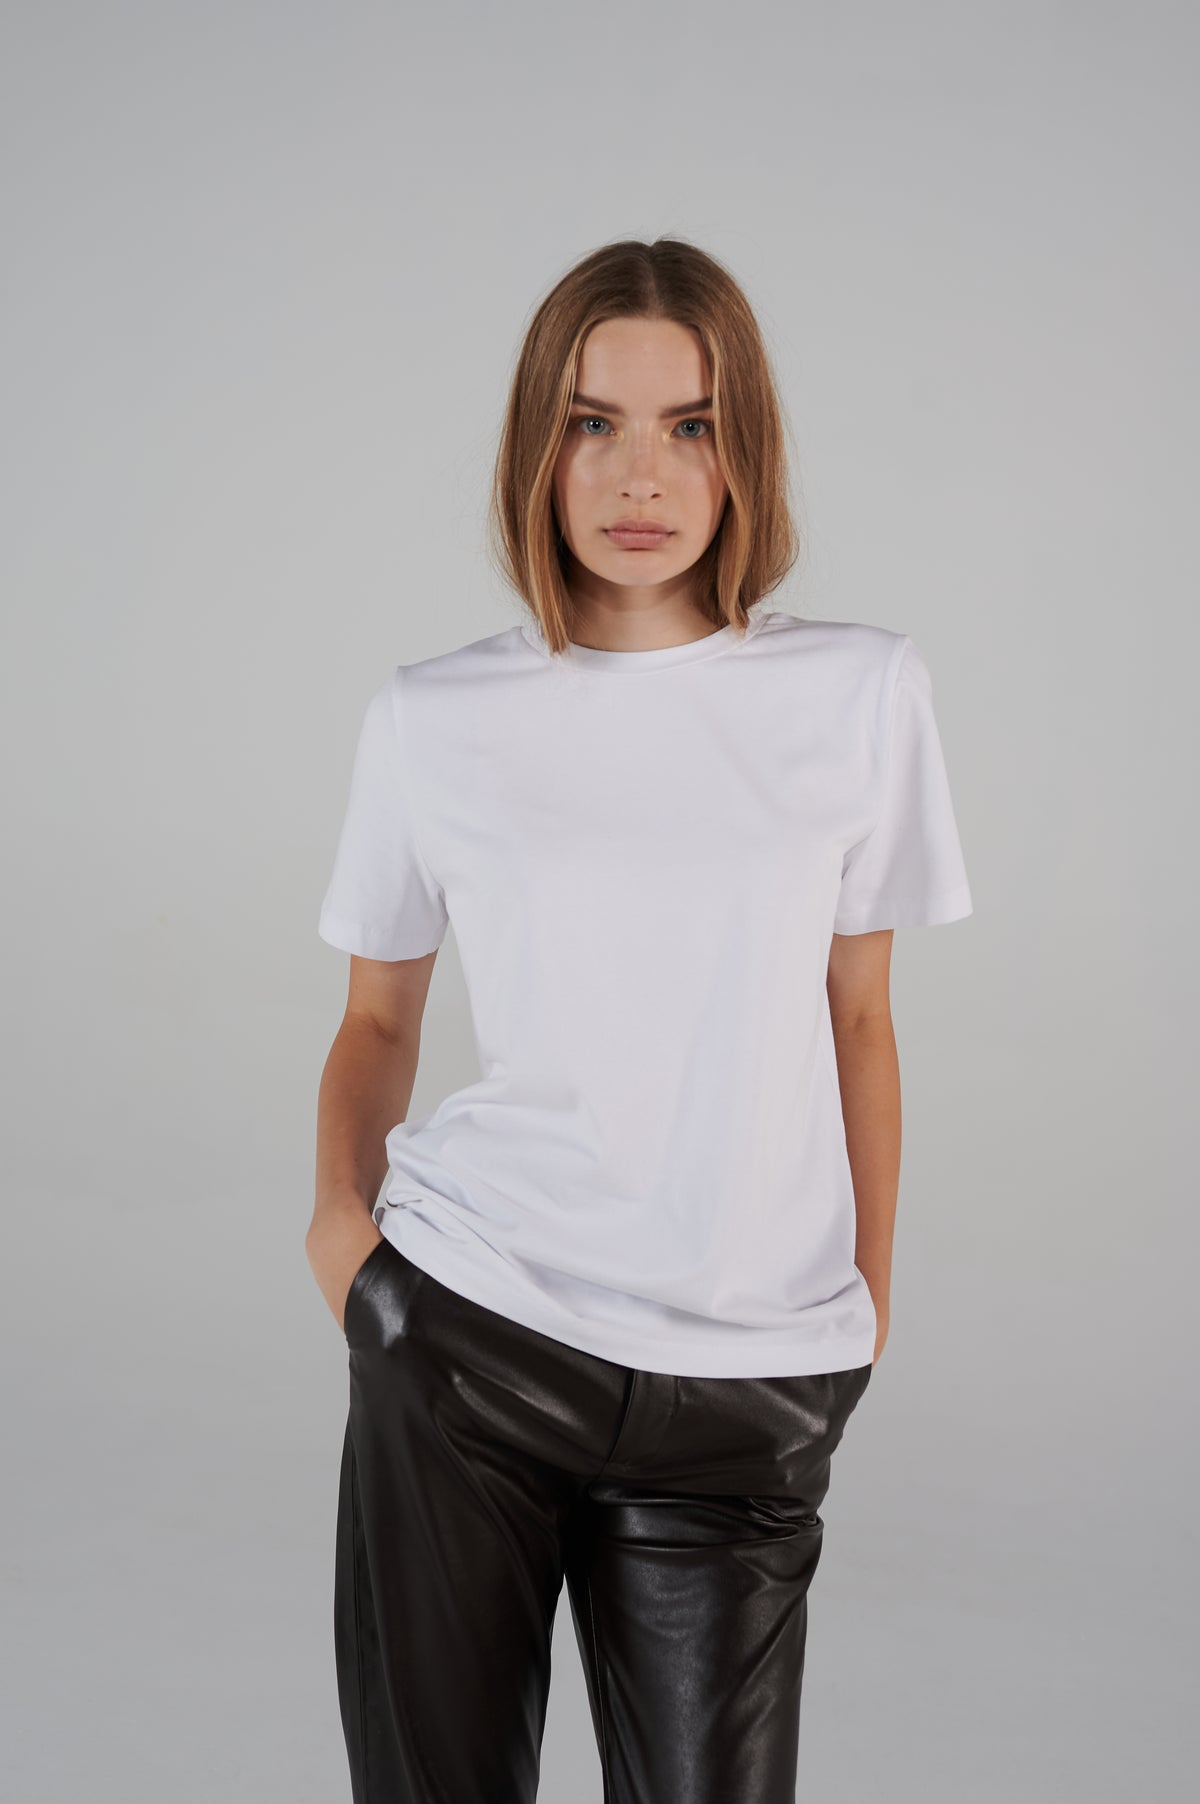 le-slap-lifetime-collection-slim-fit-white-tshirt-with-logo-on-the-back.jpg